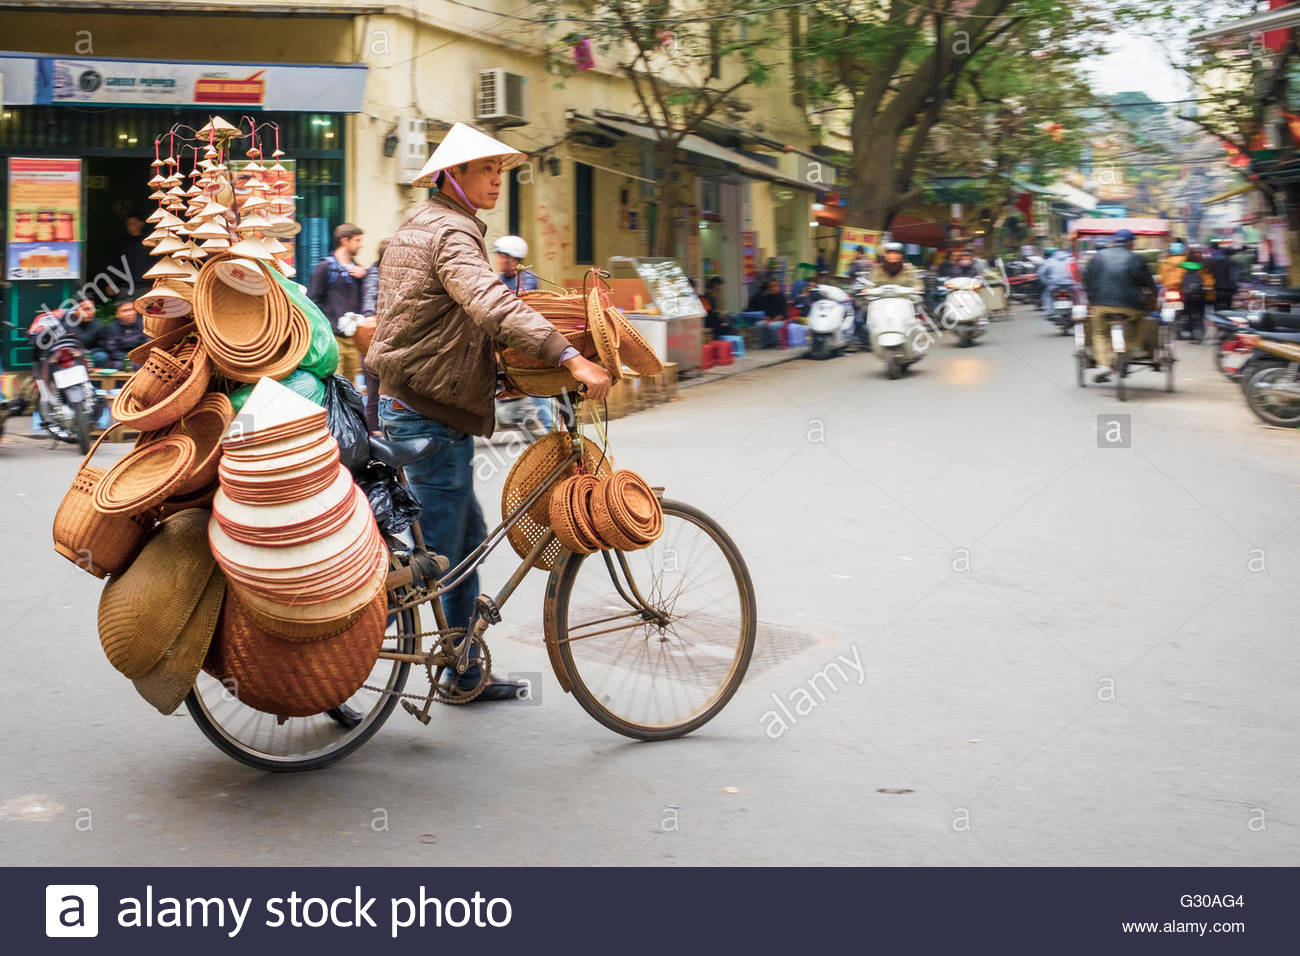 Man on bicycle selling Vietnamese hats in Old Quarter, Hoan Kiem District, Hanoi, Vietnam, Indochina, Southeast Stock Photo